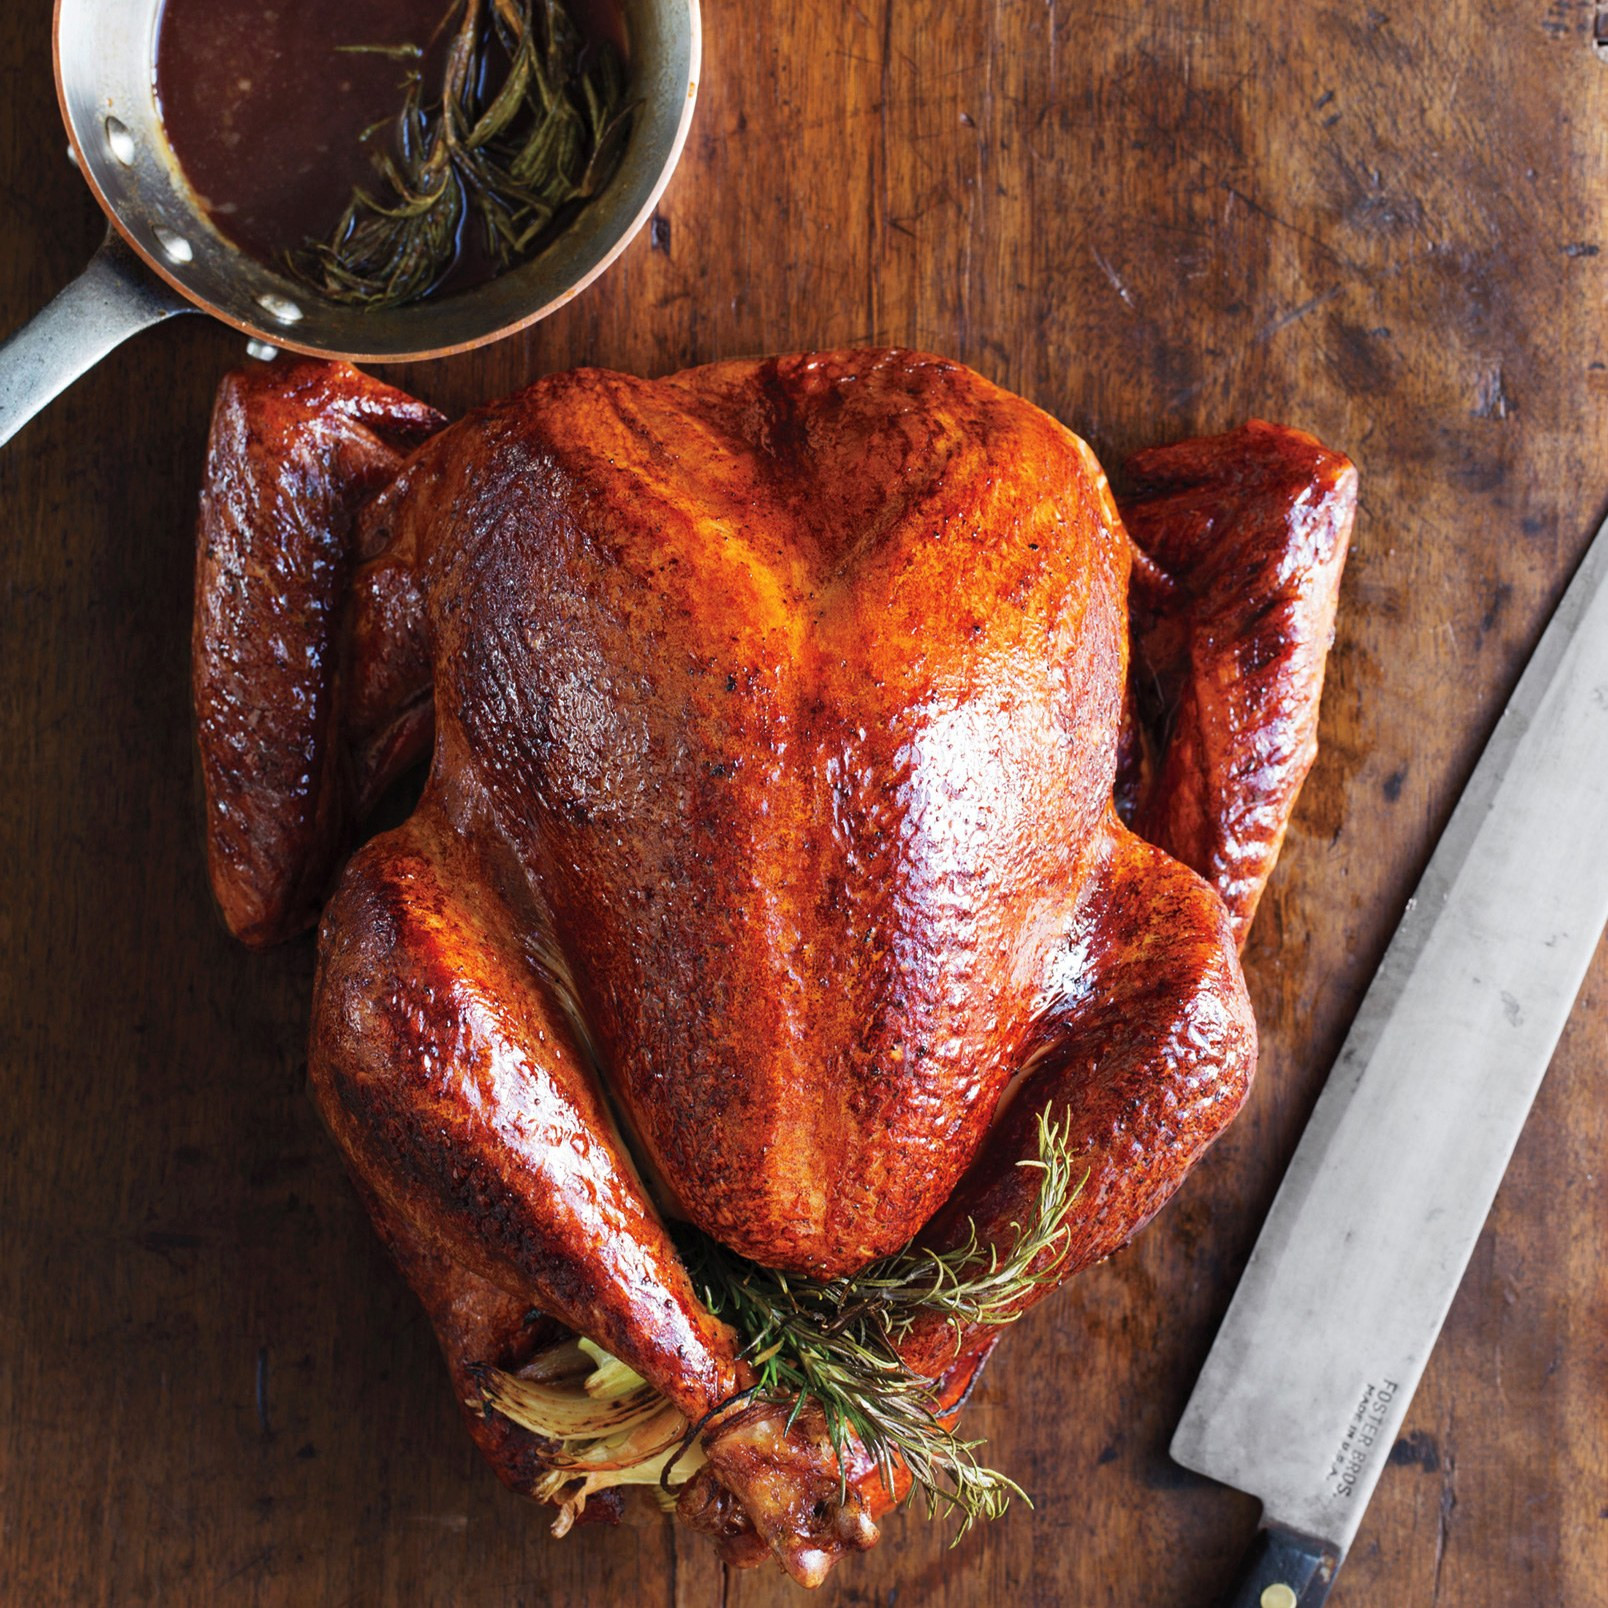 Roasted Turkey Recipes Thanksgiving  A Simple Roast Turkey recipe